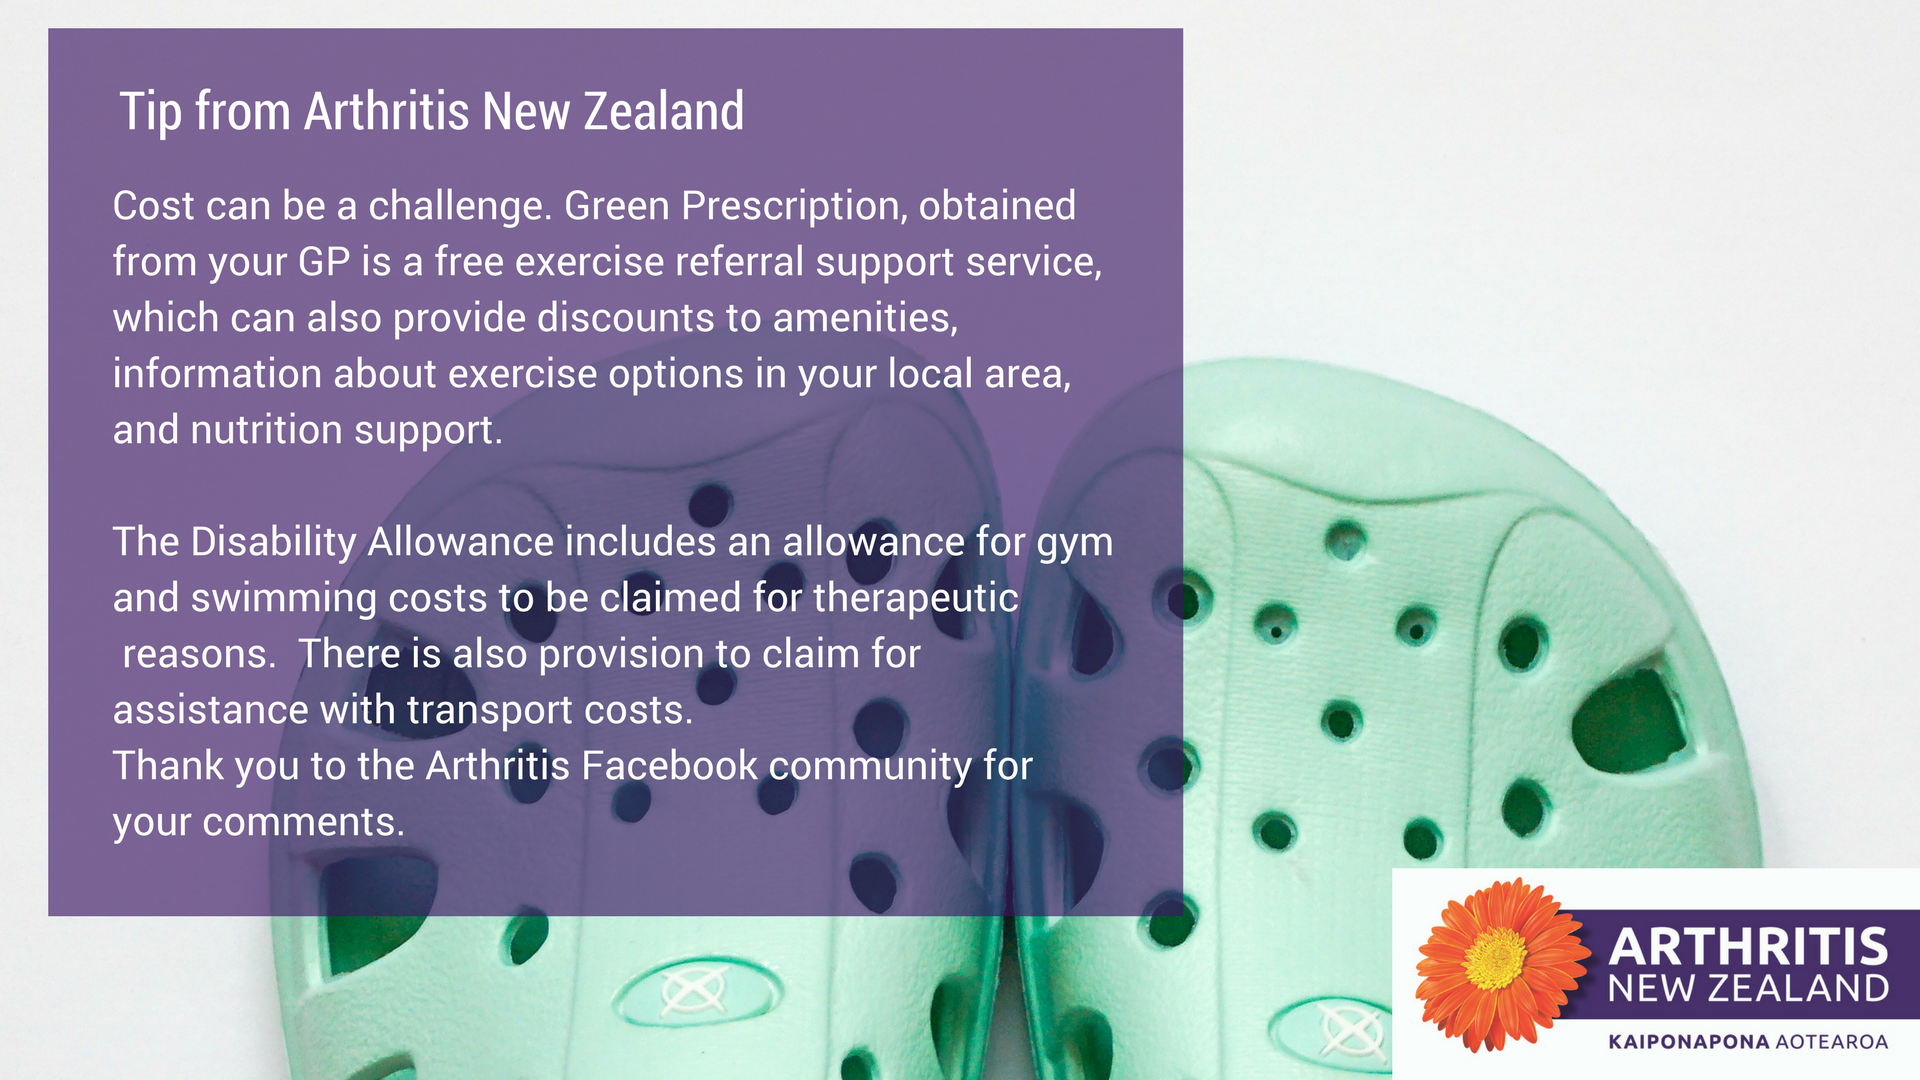 13 - Exercise tips from the Arthritis New Zealand community